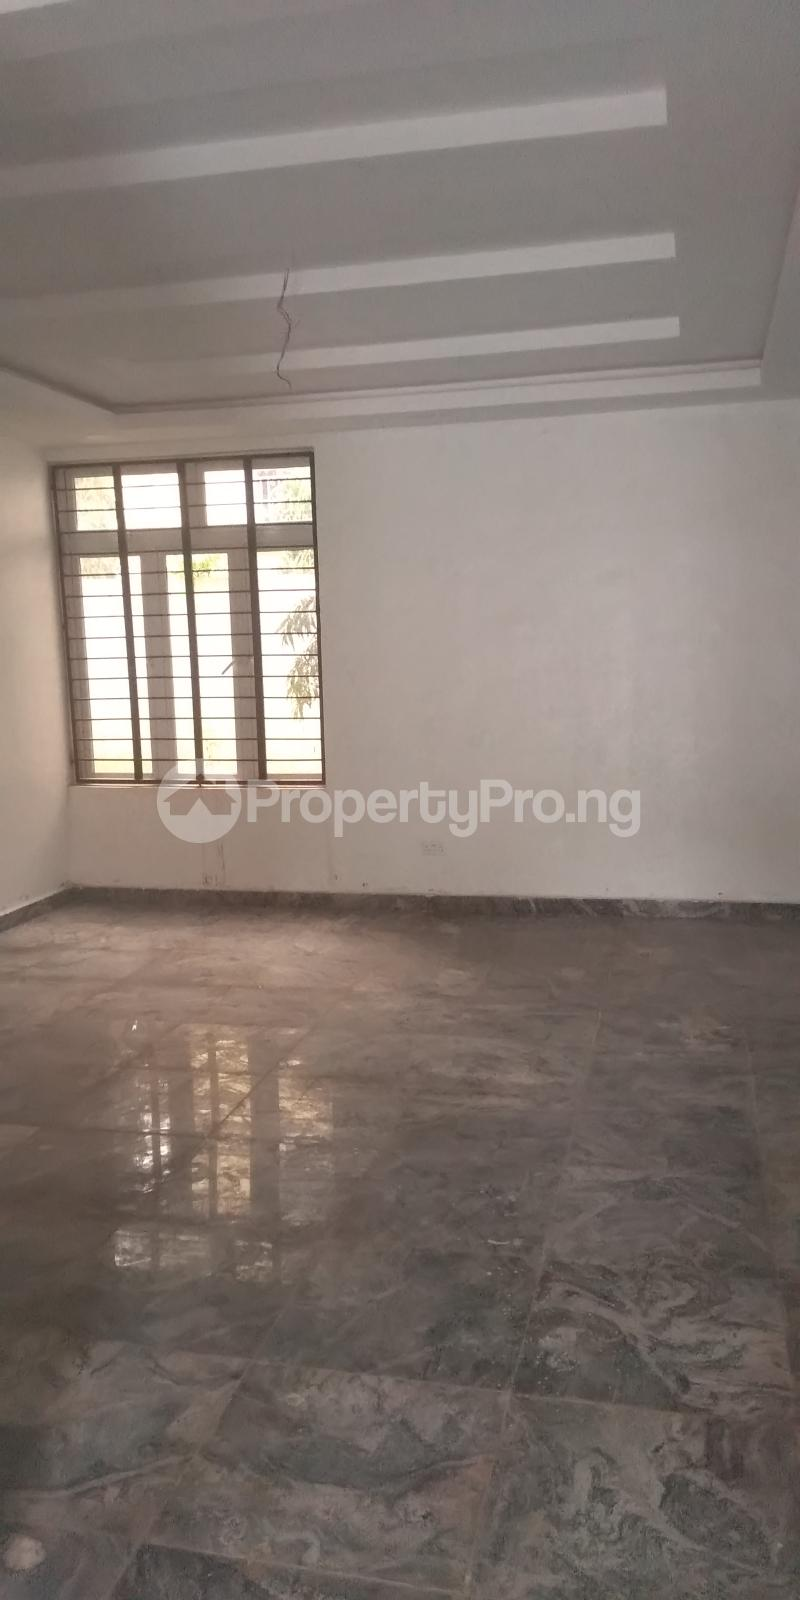 5 bedroom Flat / Apartment for sale Life Camp Abuja - 13